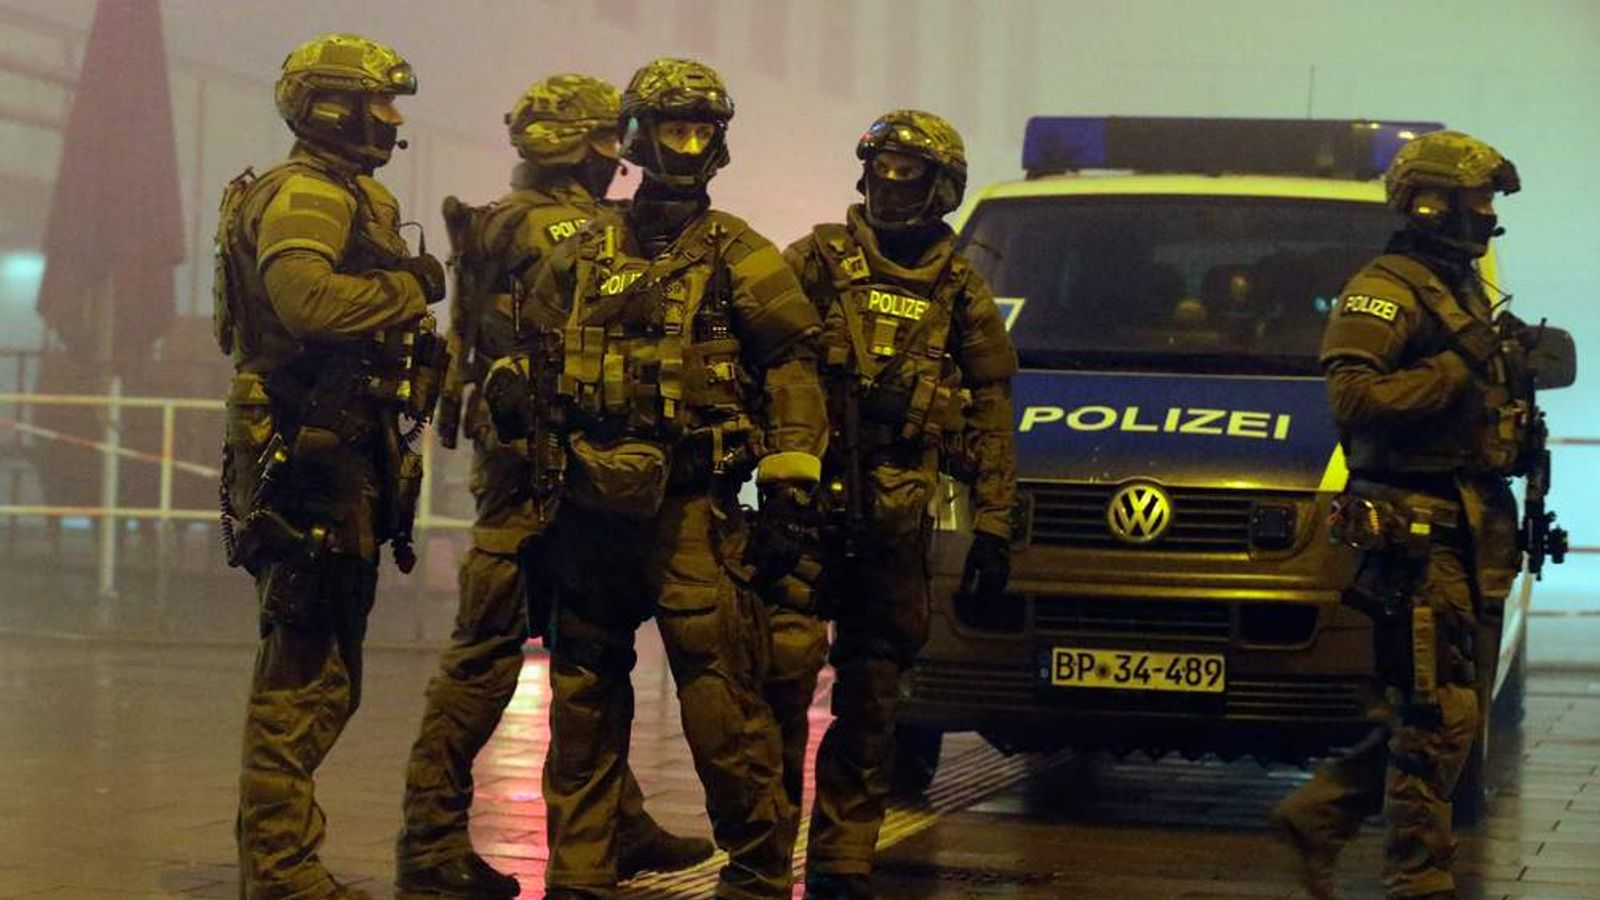 Munich On Alert Following Terror Warning